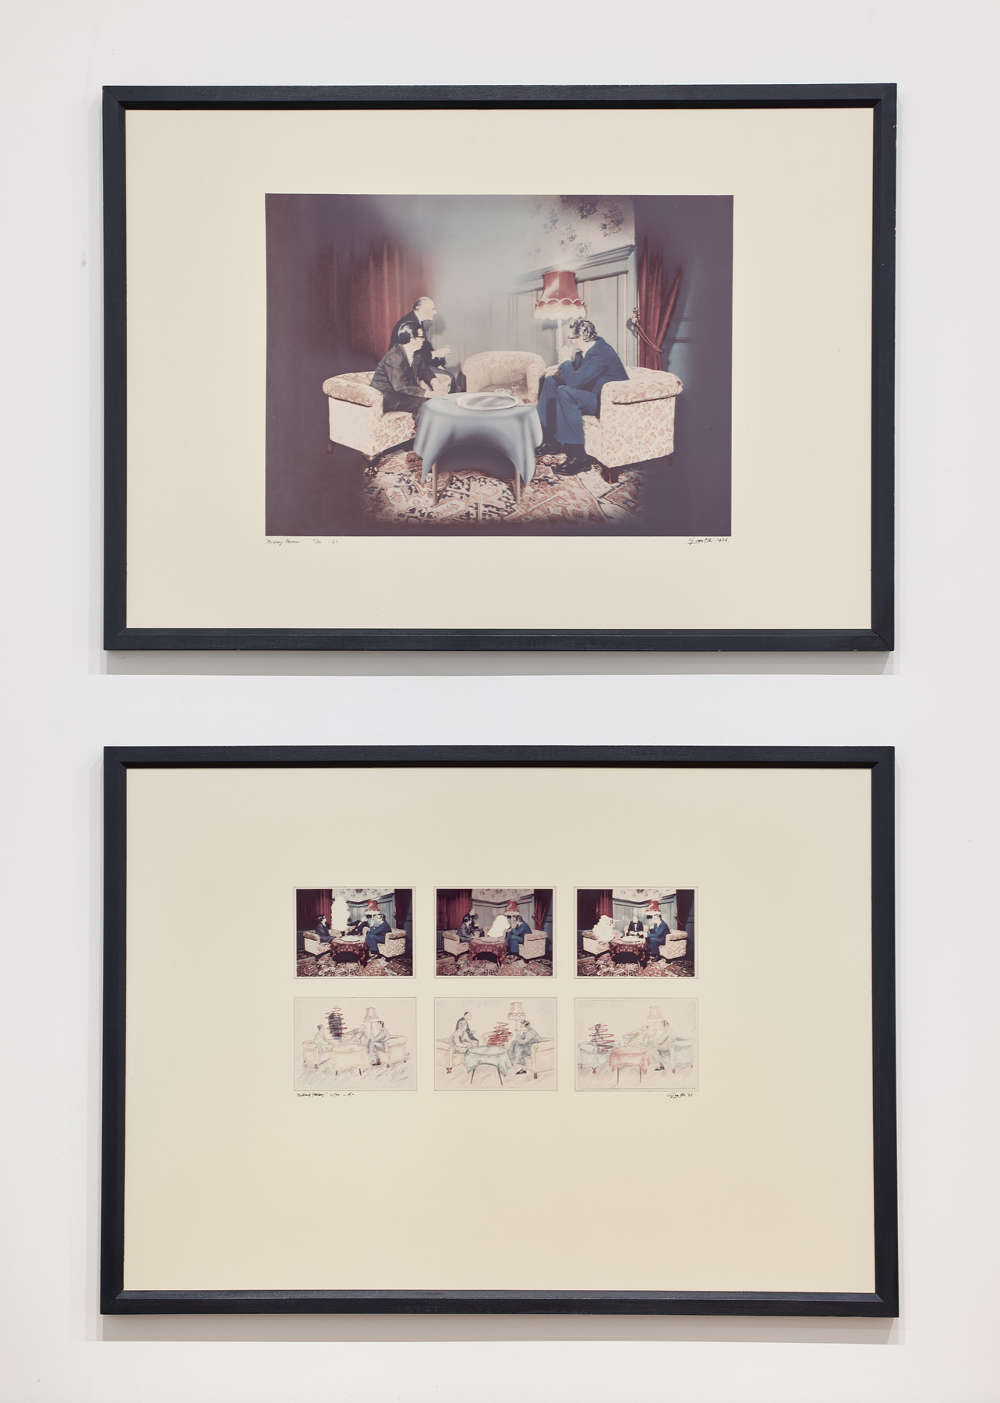 Ger van Elk, Missing Persons, 1976. Two coloured photolithographs. Framed, each: 74 x 104.1 x 3 cm 29 1/8 x 41 x 1 1/4 in